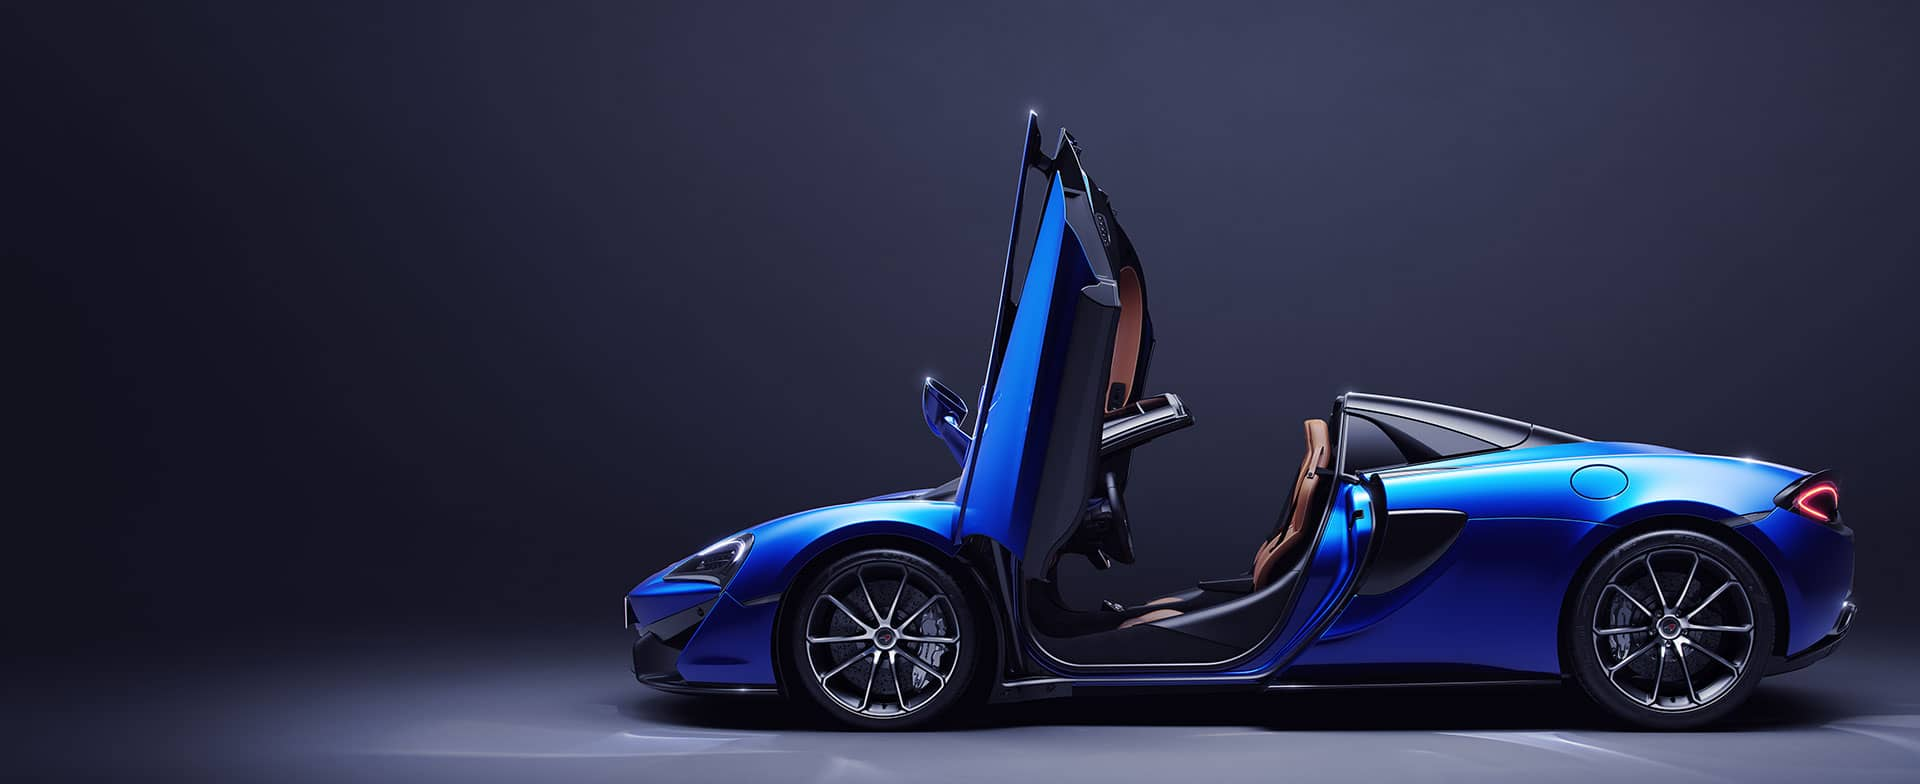 McLaren 570S Spider for The Exhilaration